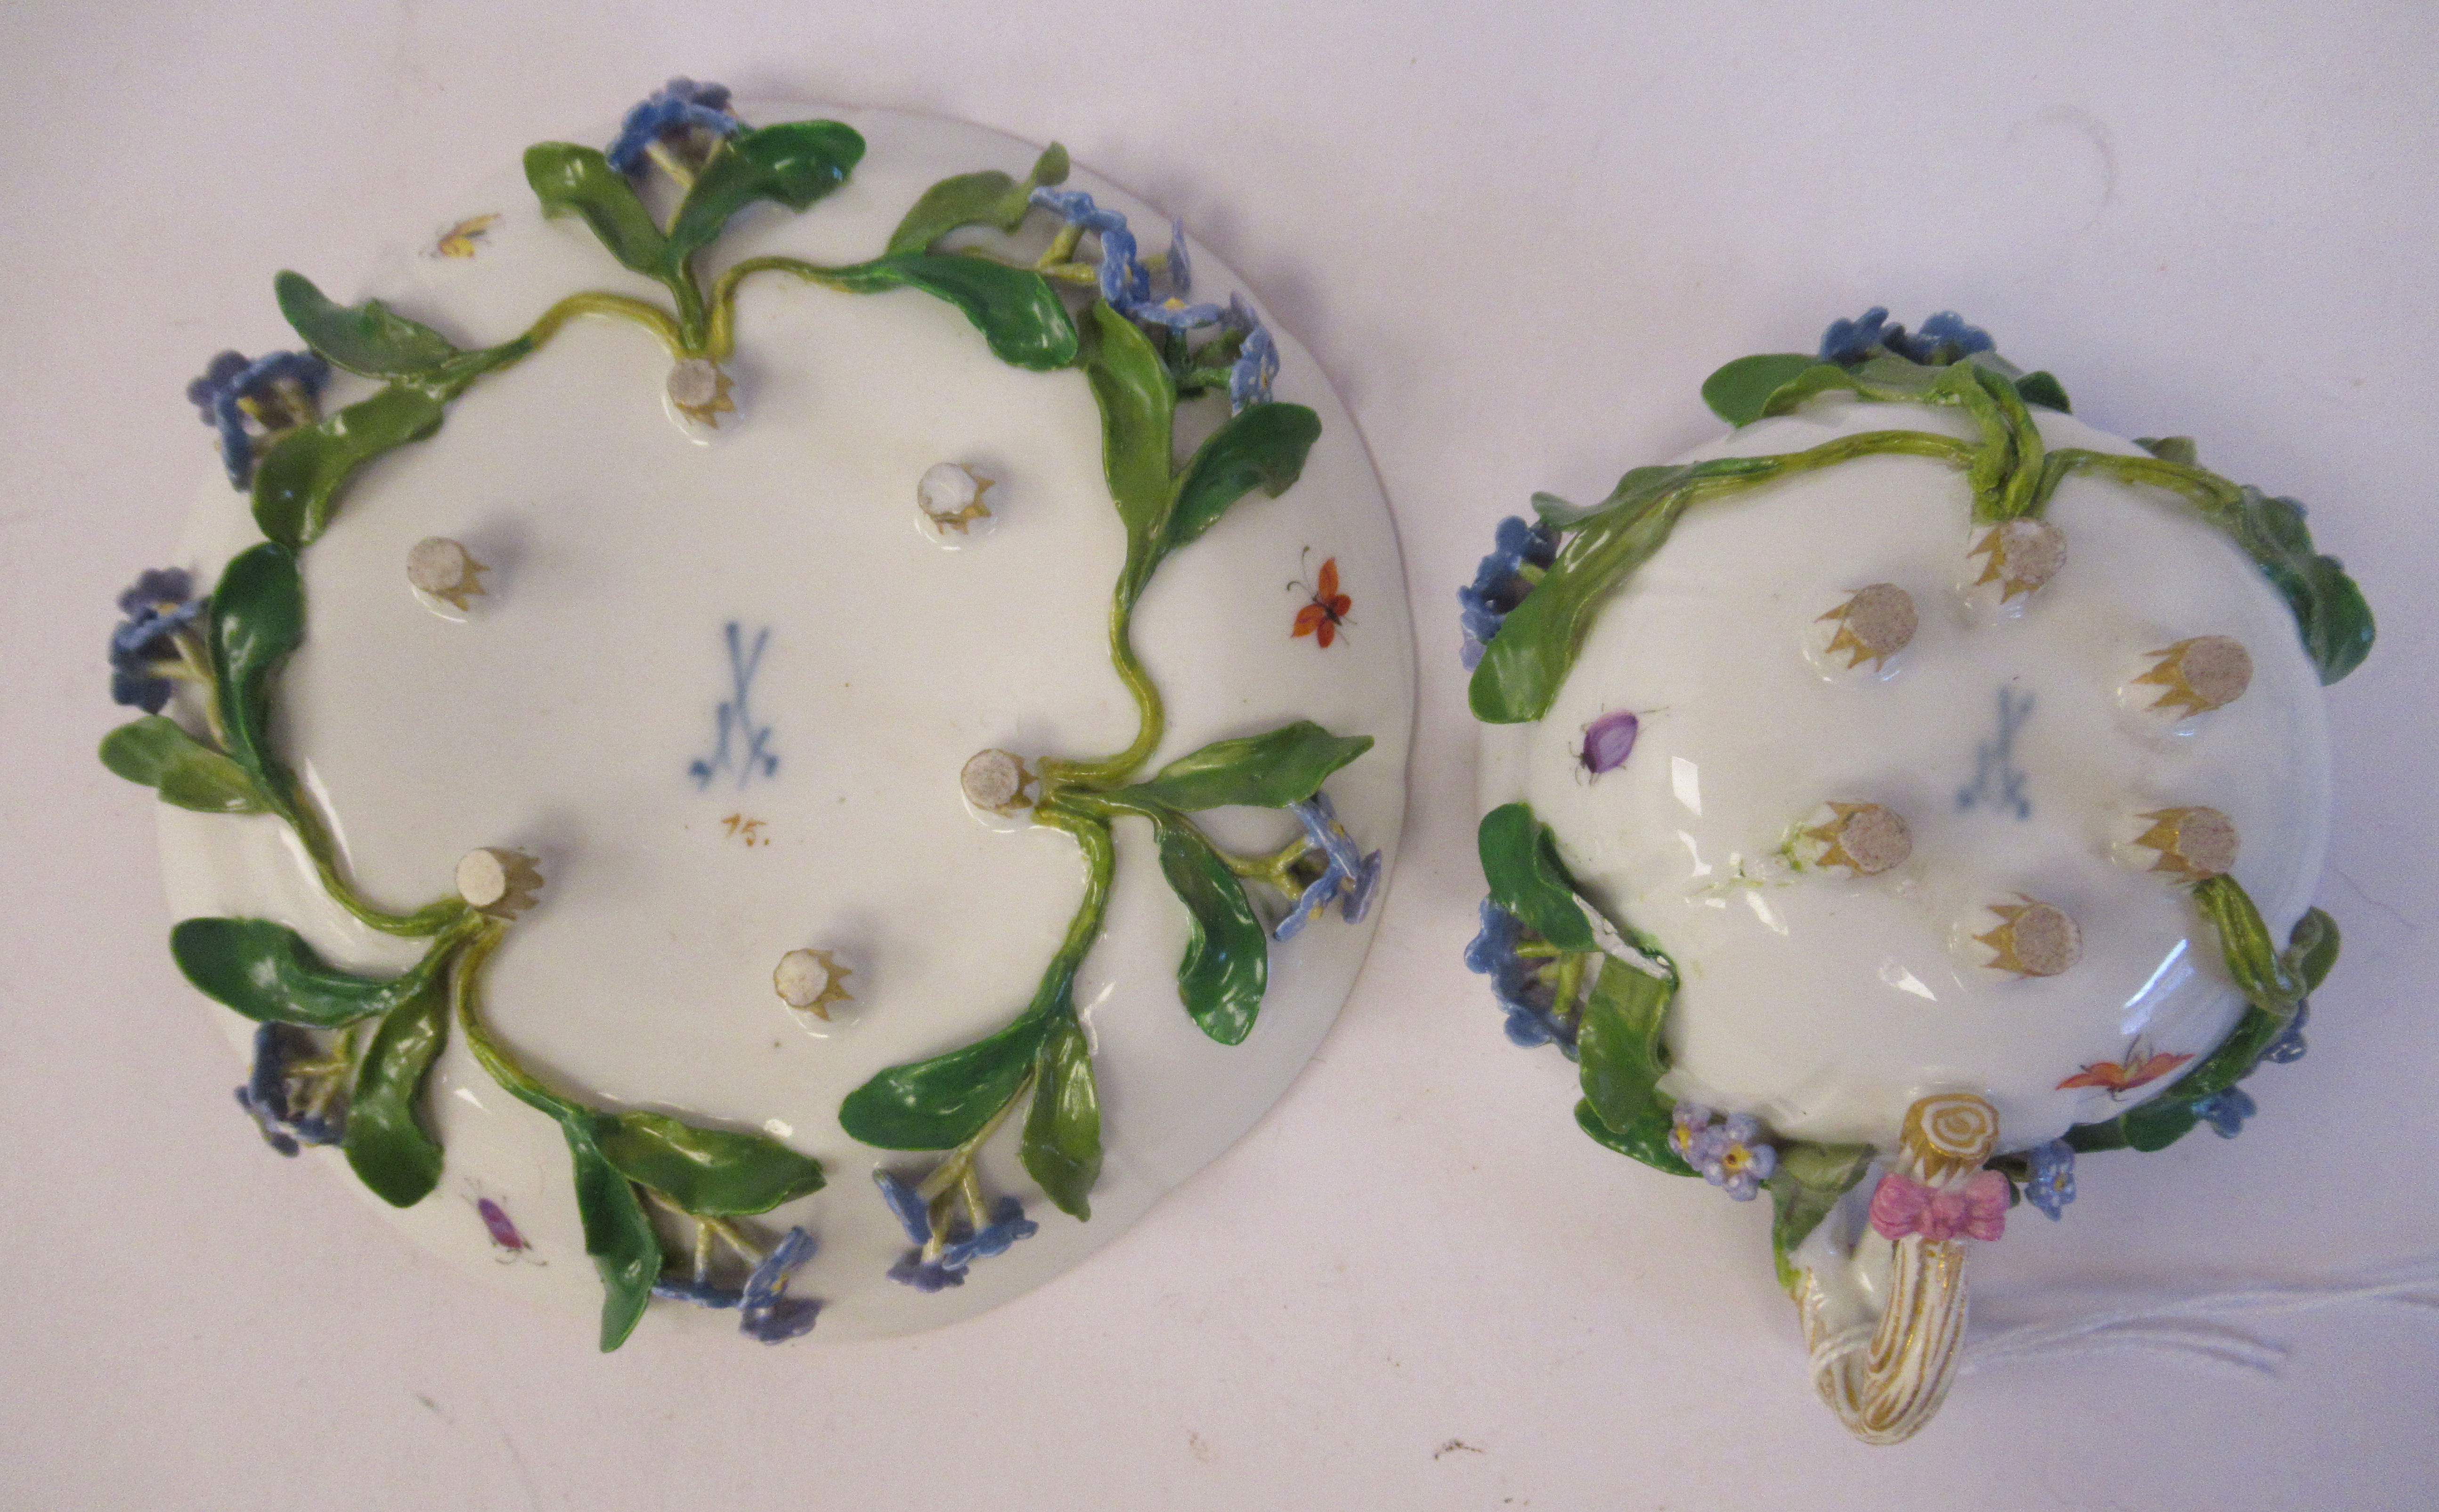 A 19thC Meissen porcelain cup and saucer, having an entwined twig handle, decorated with encrusted - Image 6 of 10